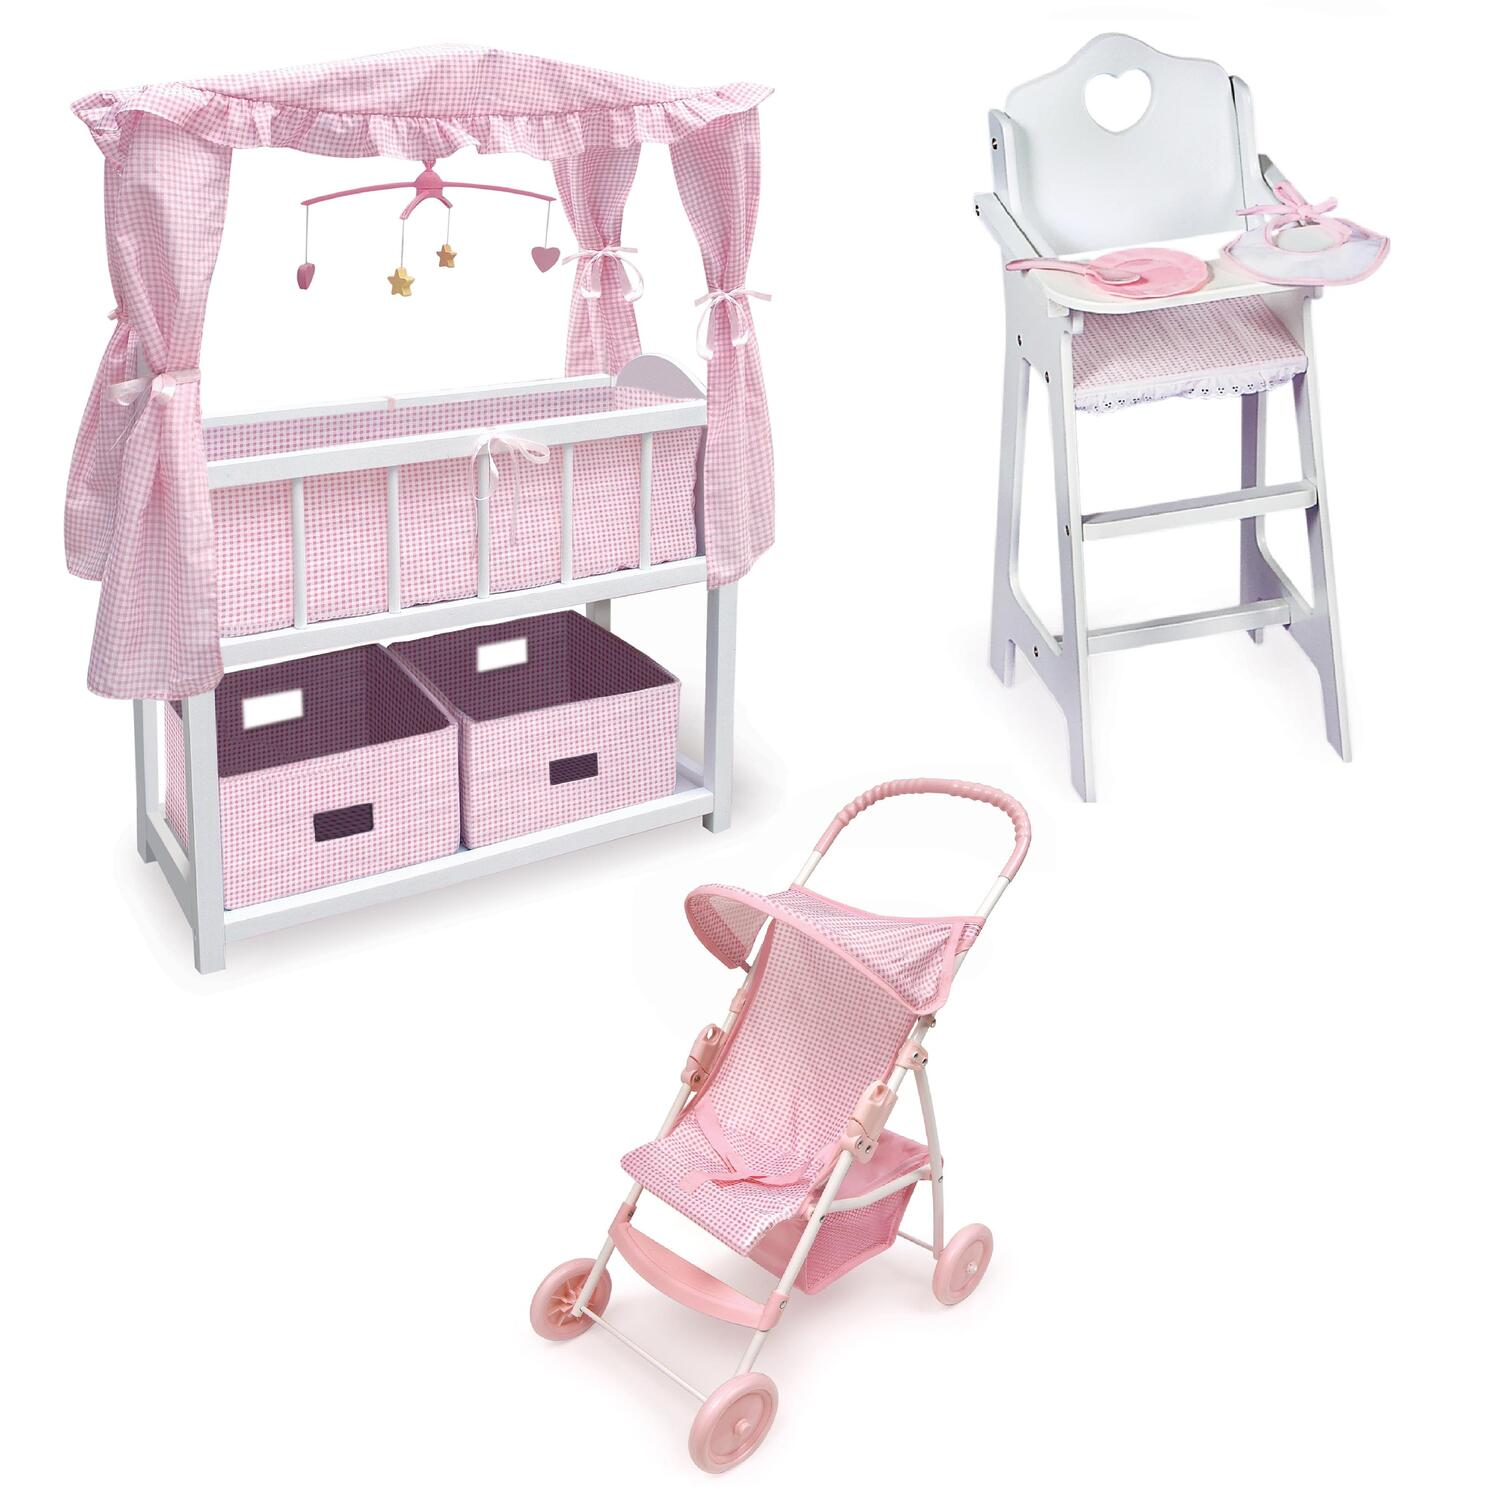 american girl high chair folding uae furniture home goods appliances athletic gear fitness